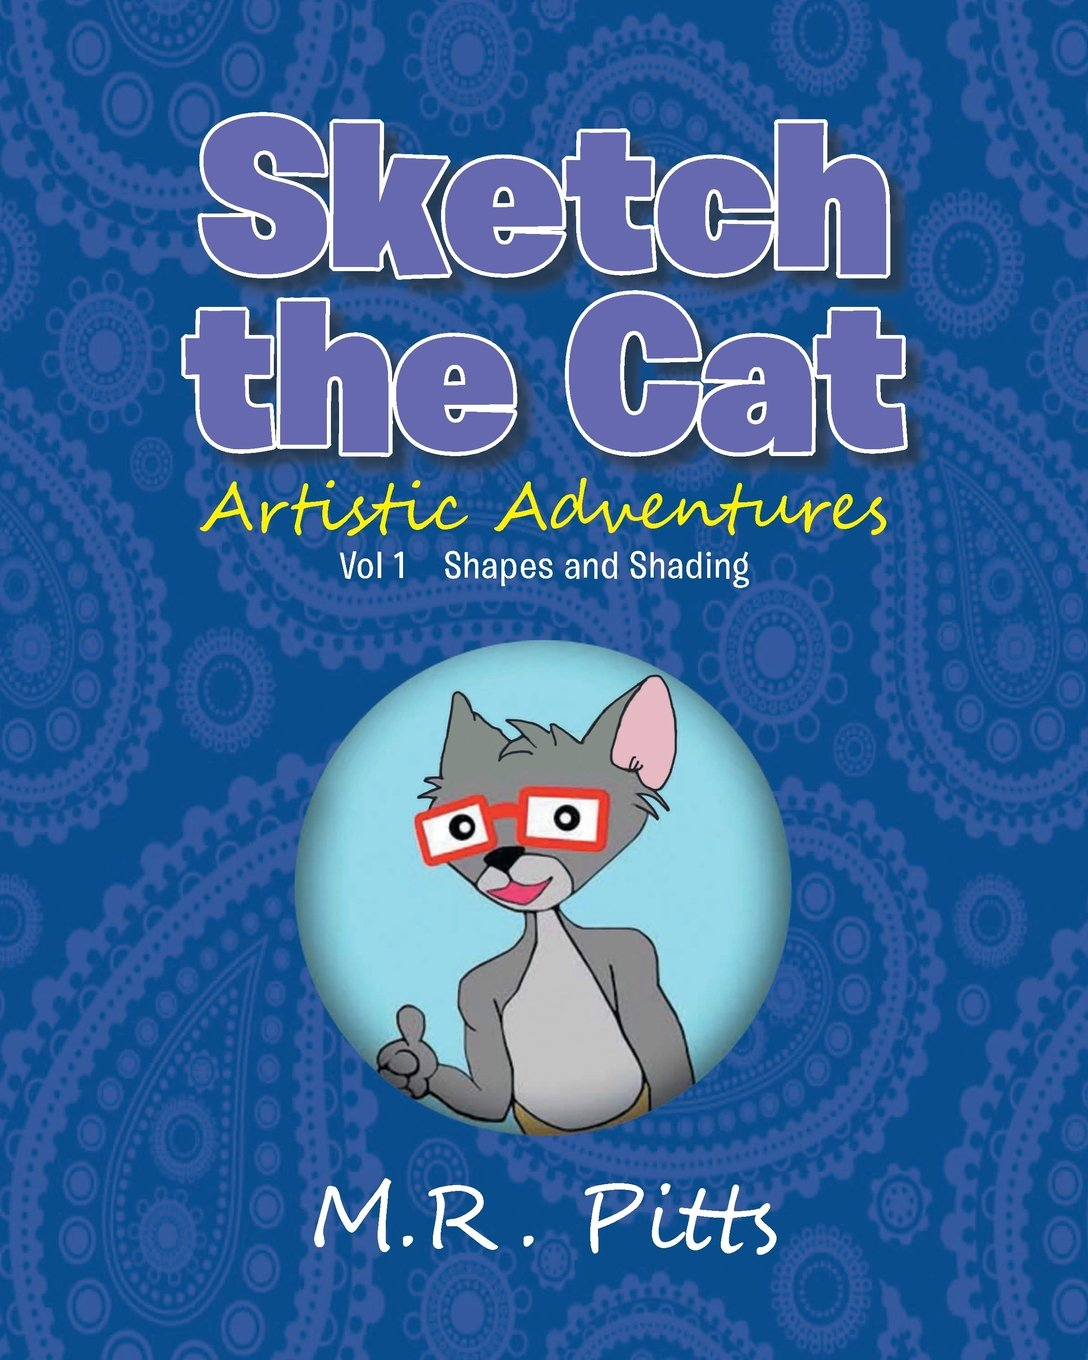 Sketch the Cat Artistic Adventures: Vol 1 Shapes and Shading ebook